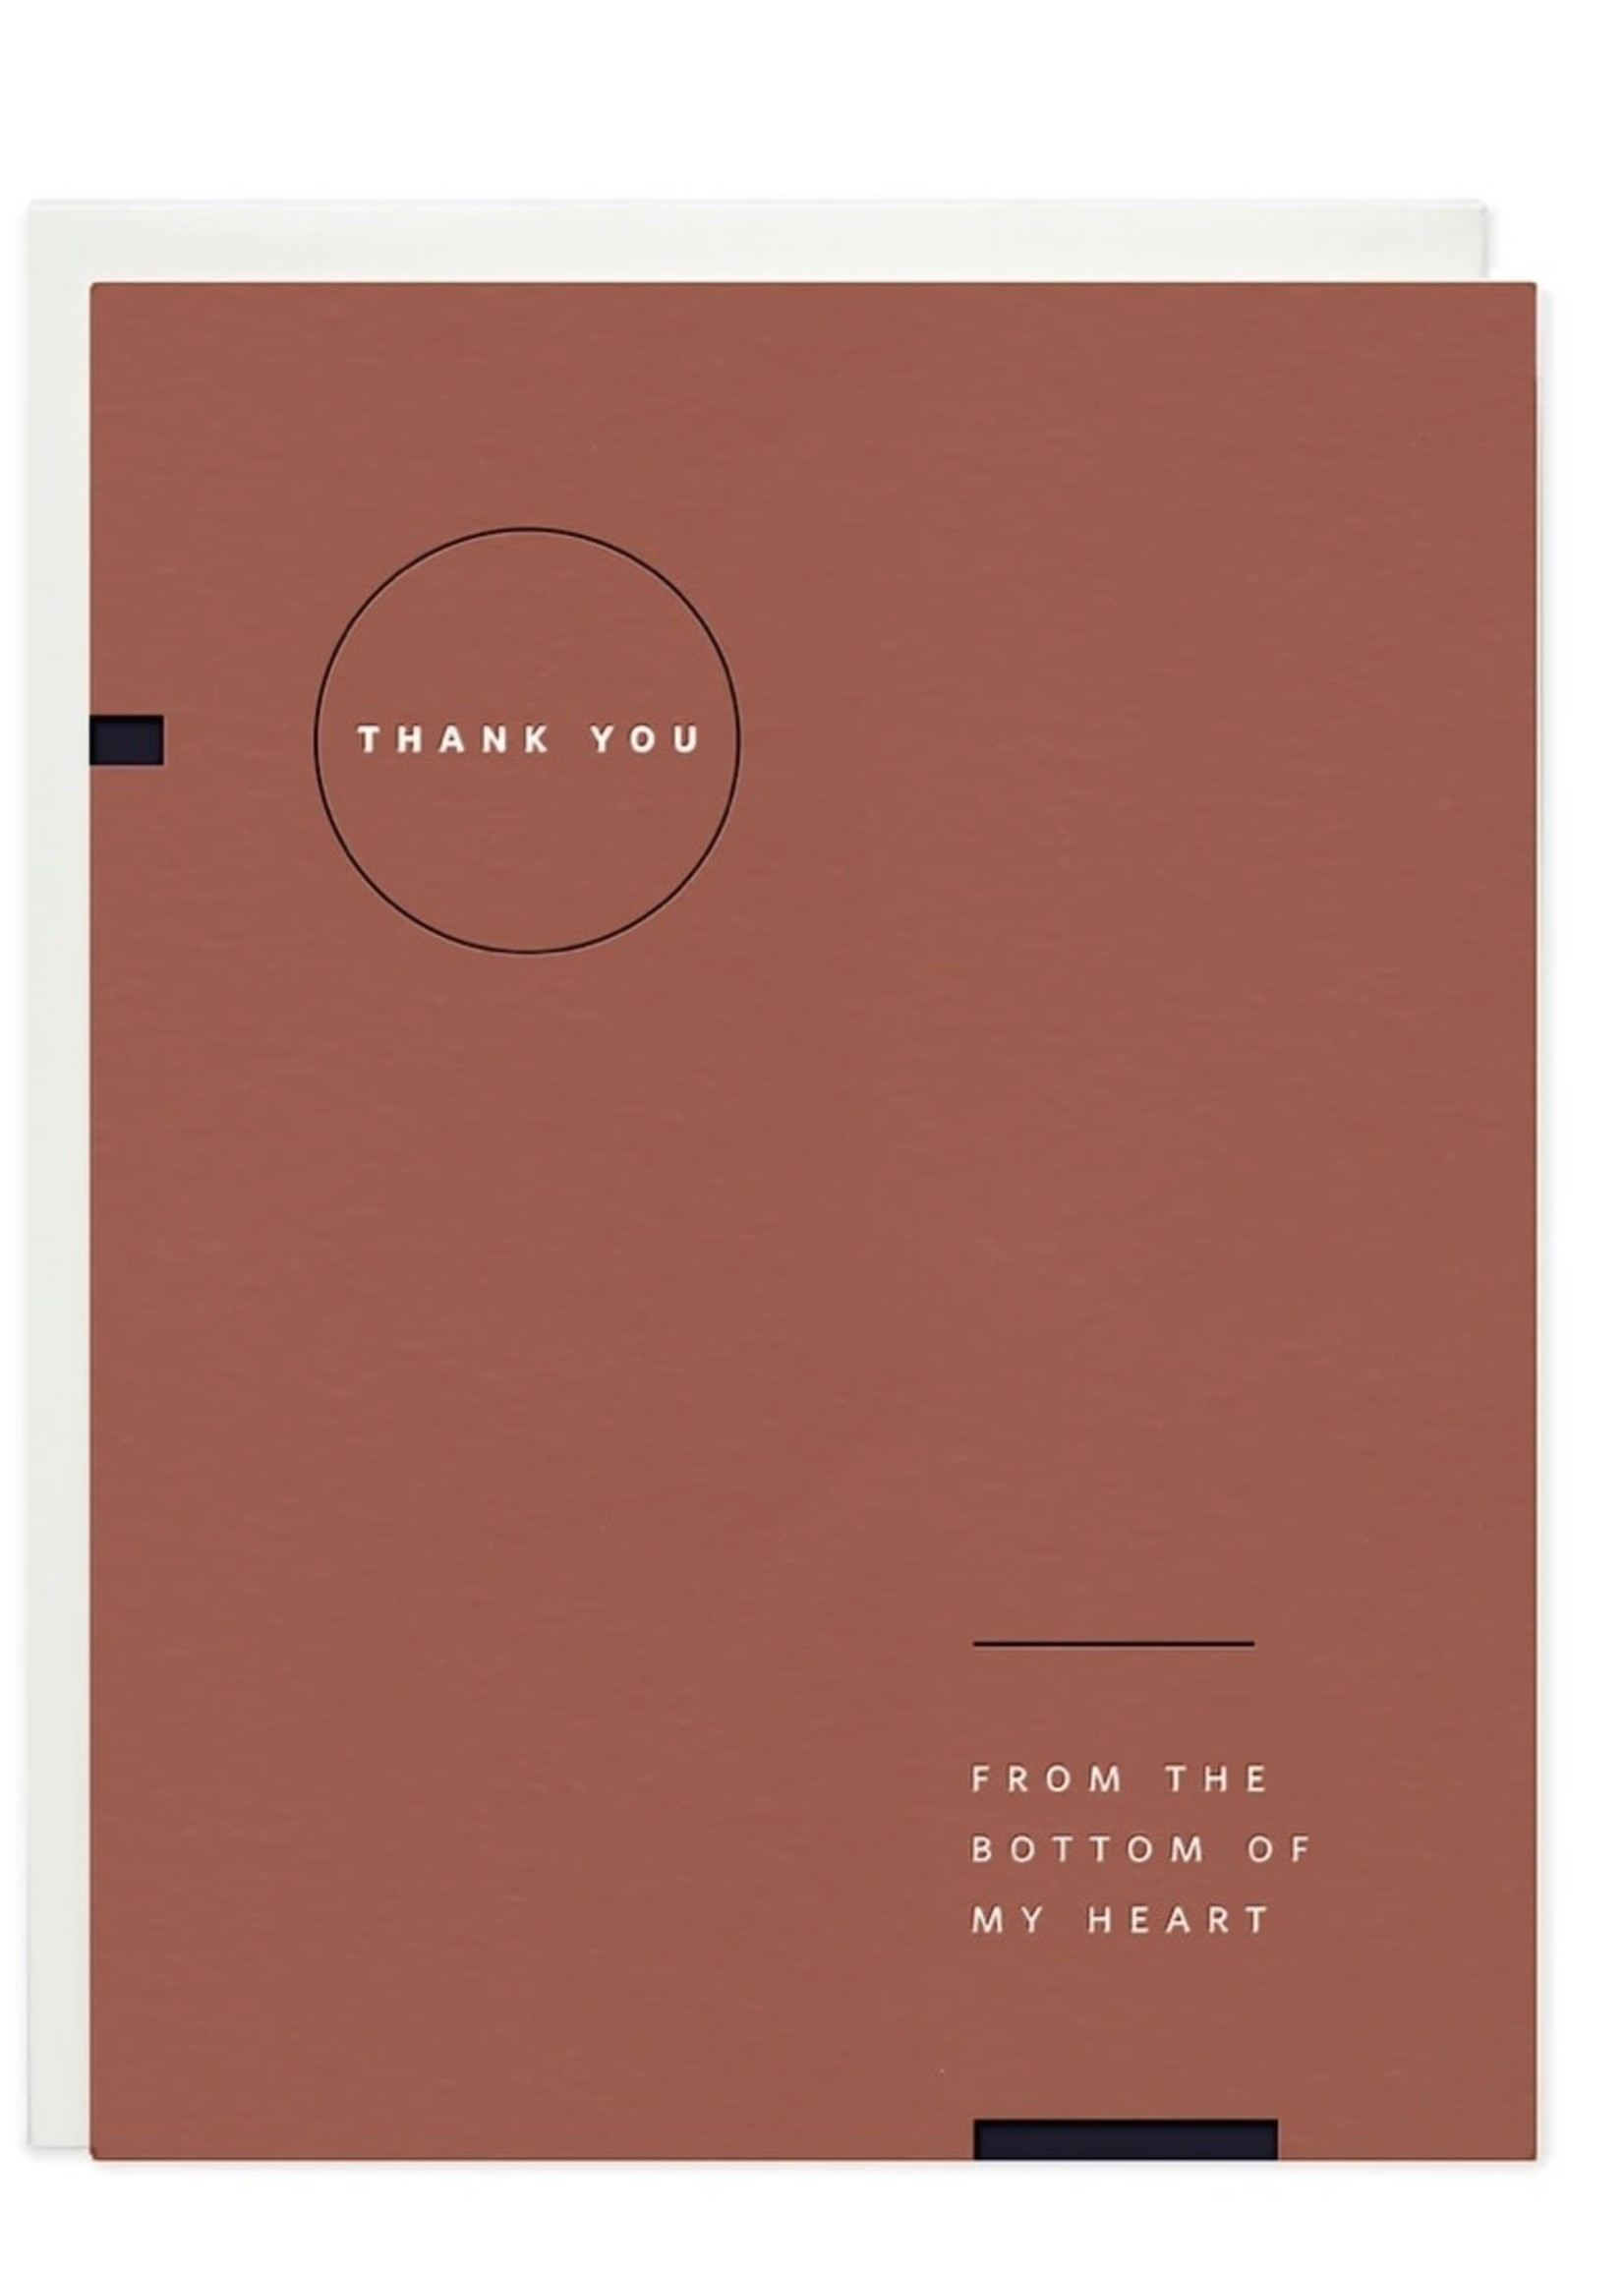 RAMONA + RUTH Thank You Geometric Greeting Card